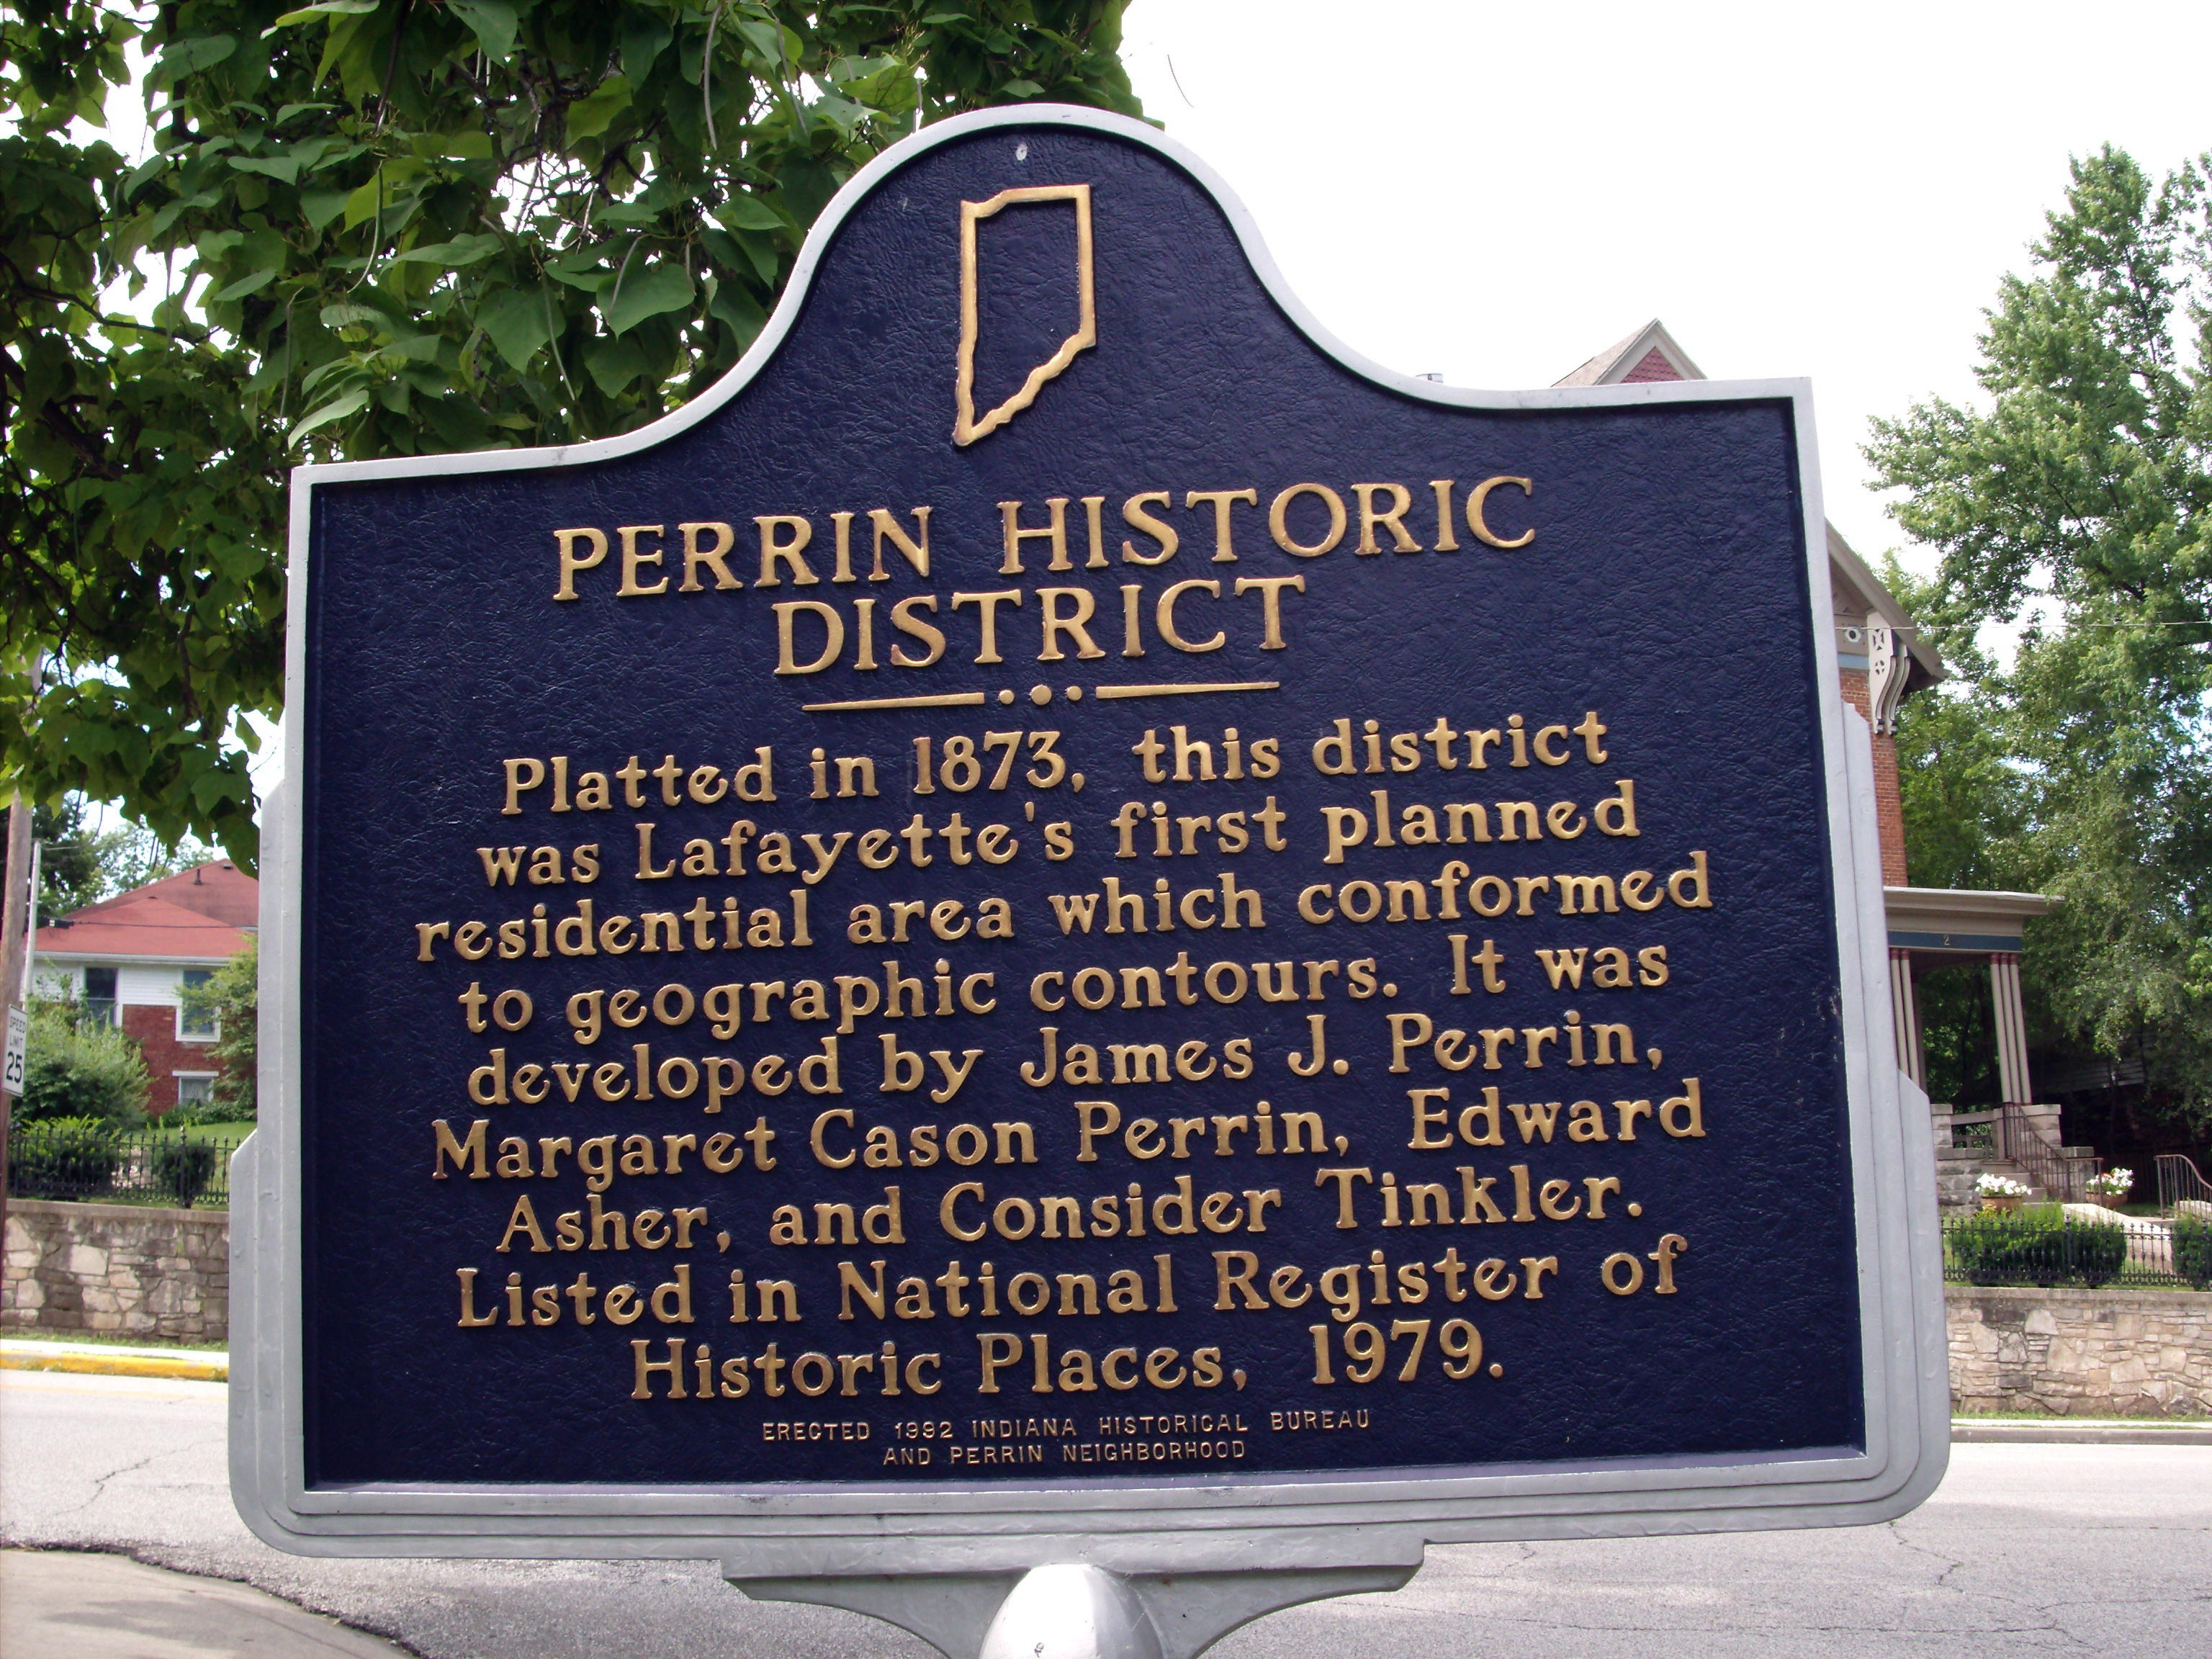 Perrin Historic District Marker